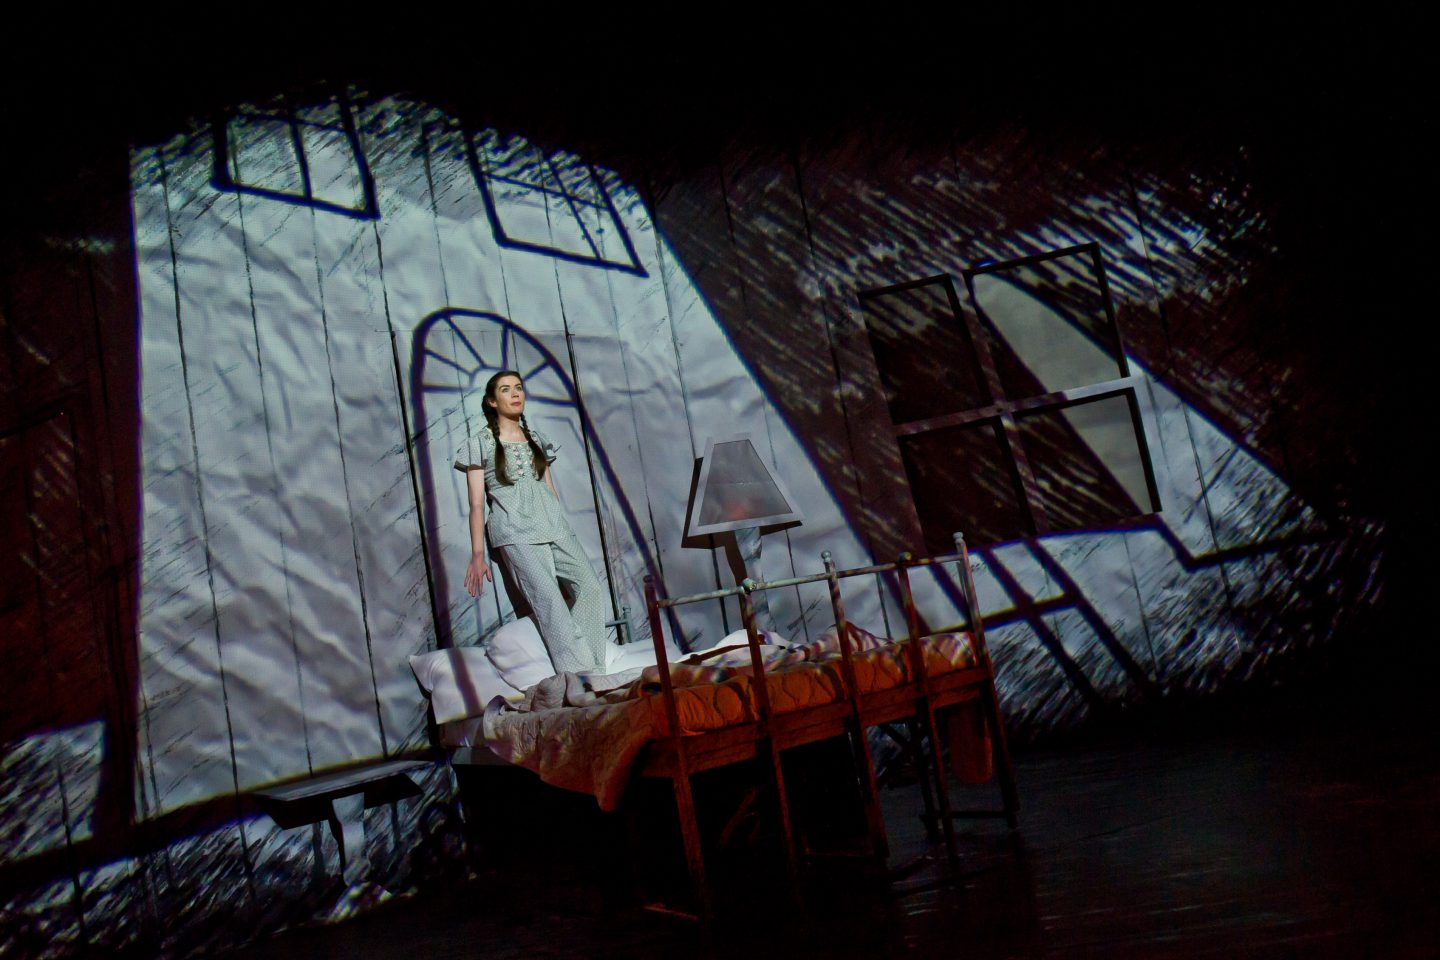 Marianne Dreams - a female performer in pyjamas stands on a bed with a projected image of an illustration of the front of a house on the wall behind her